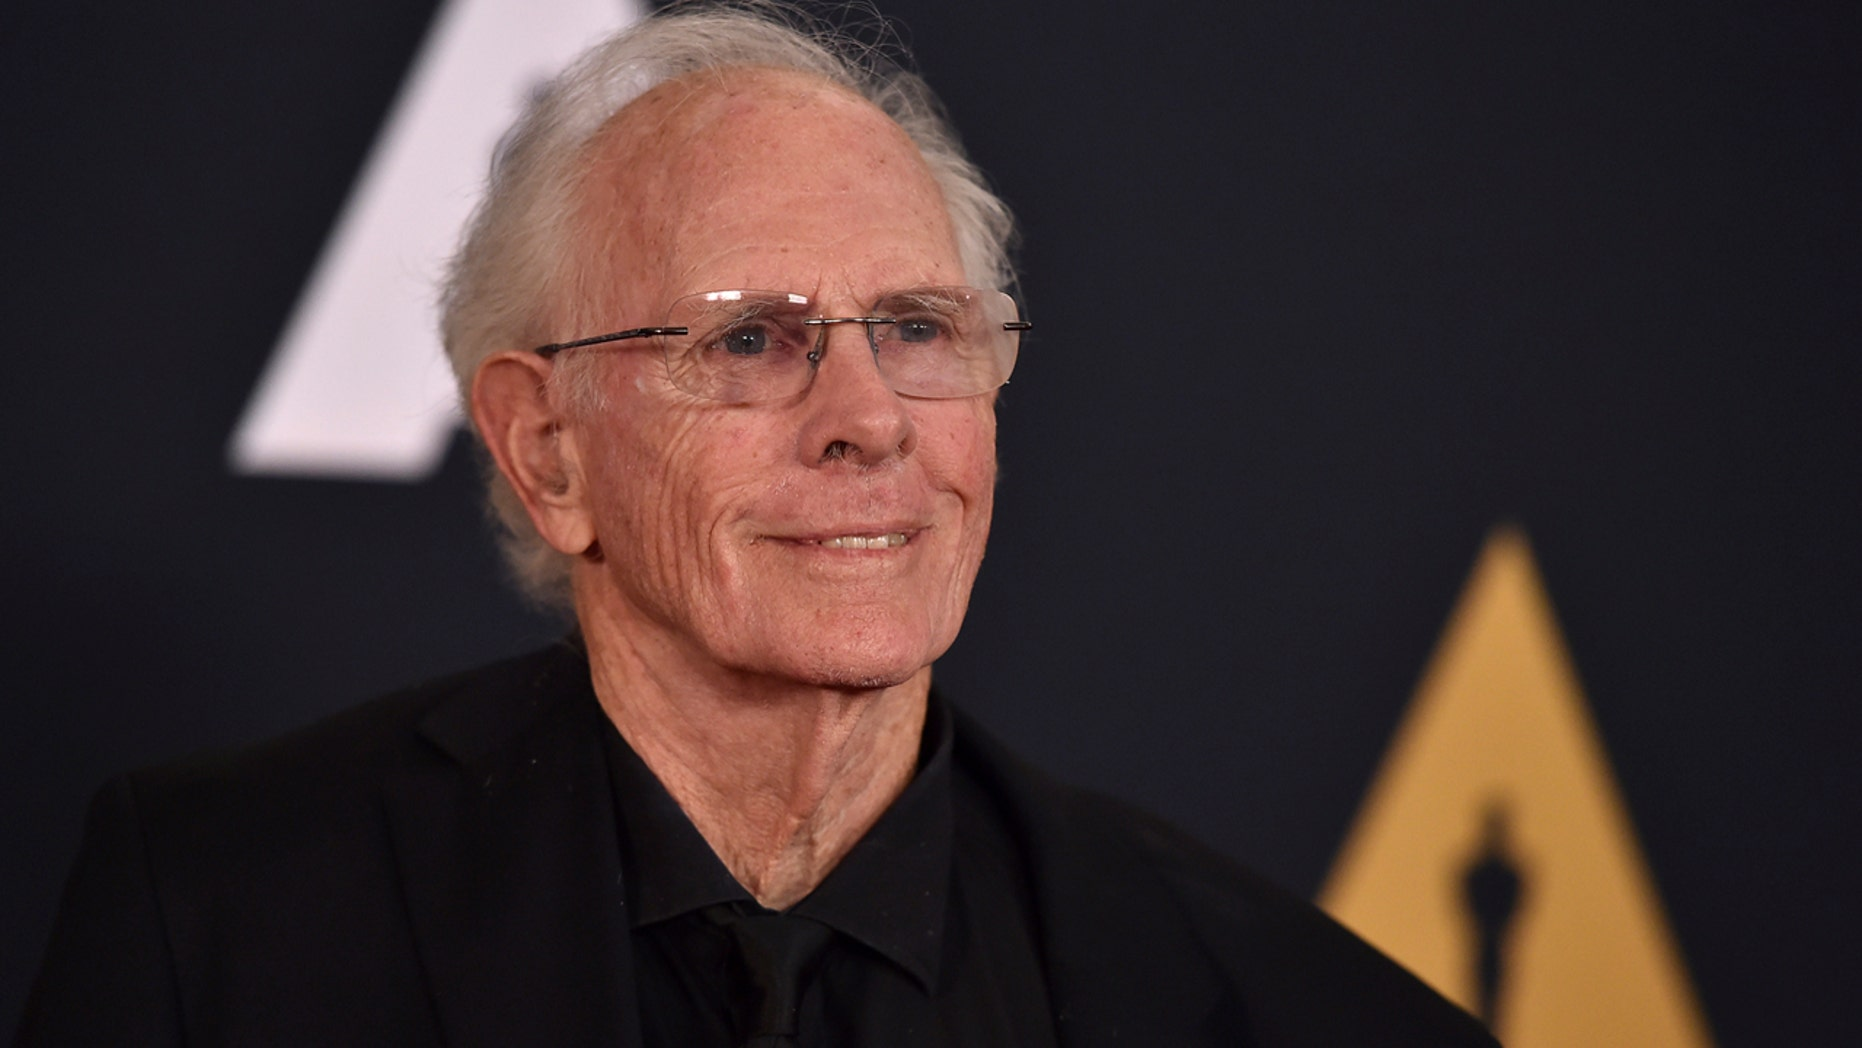 Bruce Dern arrives at the Governors Awards 2016 in Los Angeles. Dern was released from hospital following a fall in his daily jog in Los Angeles.